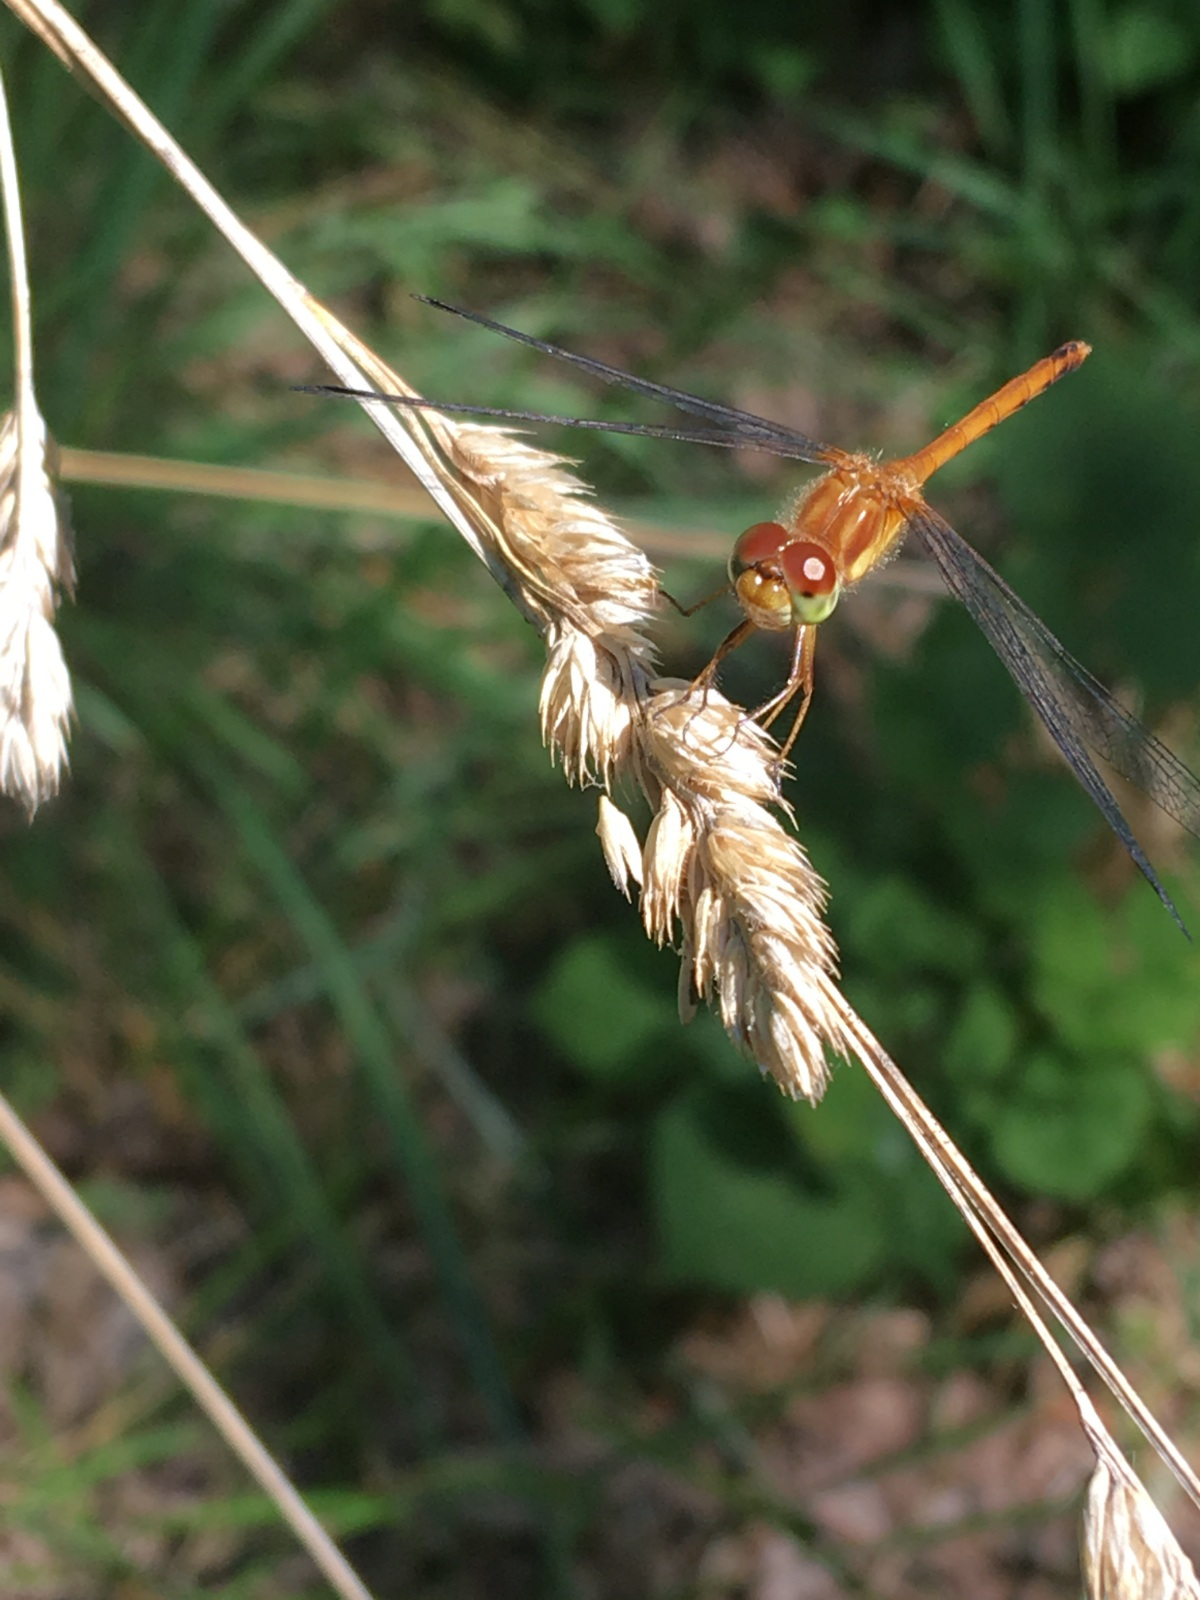 Dragonfly resting on a piece of grass